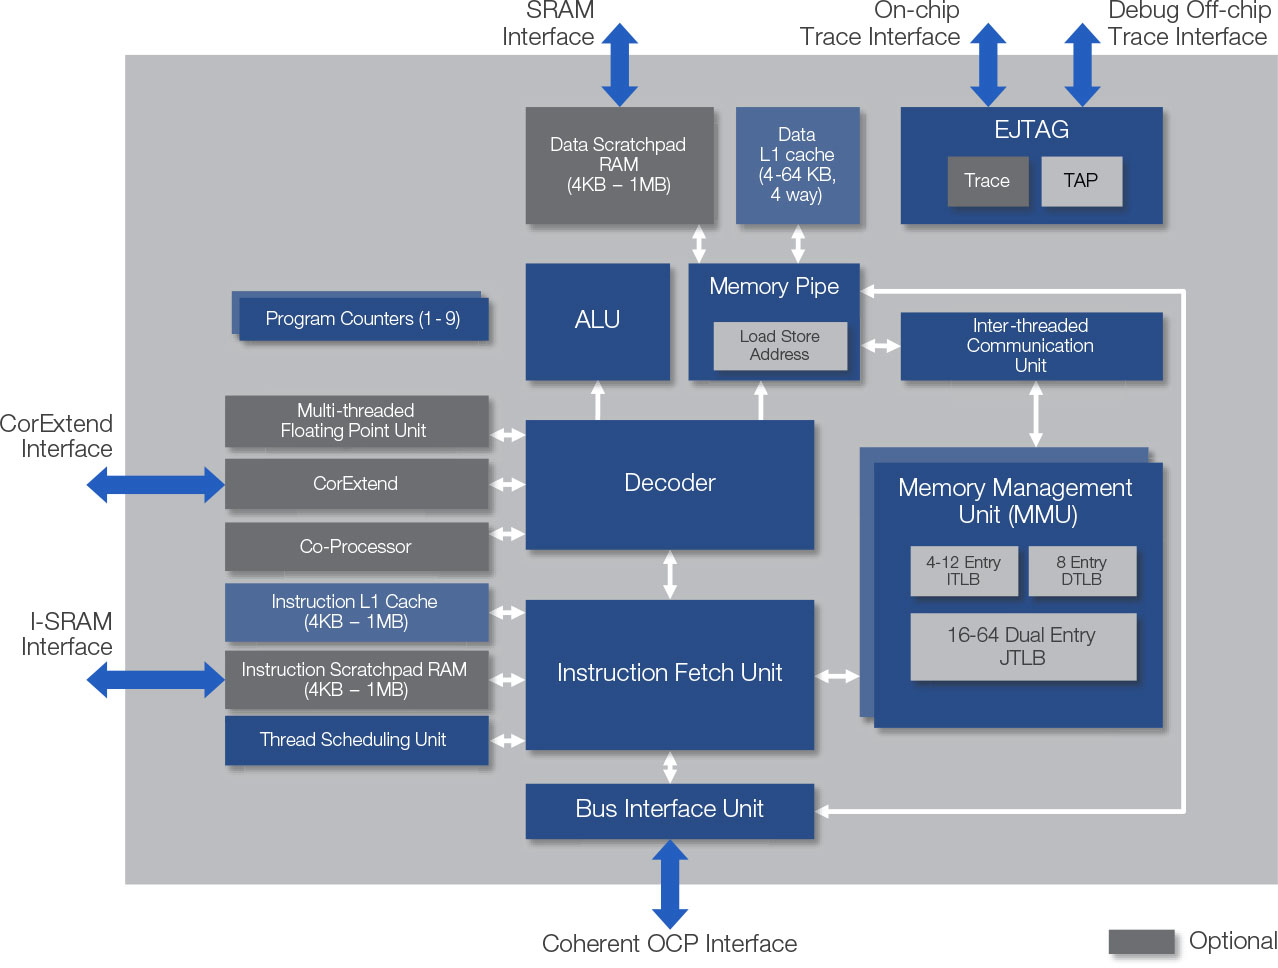 MIPS interAptiv Processor Core